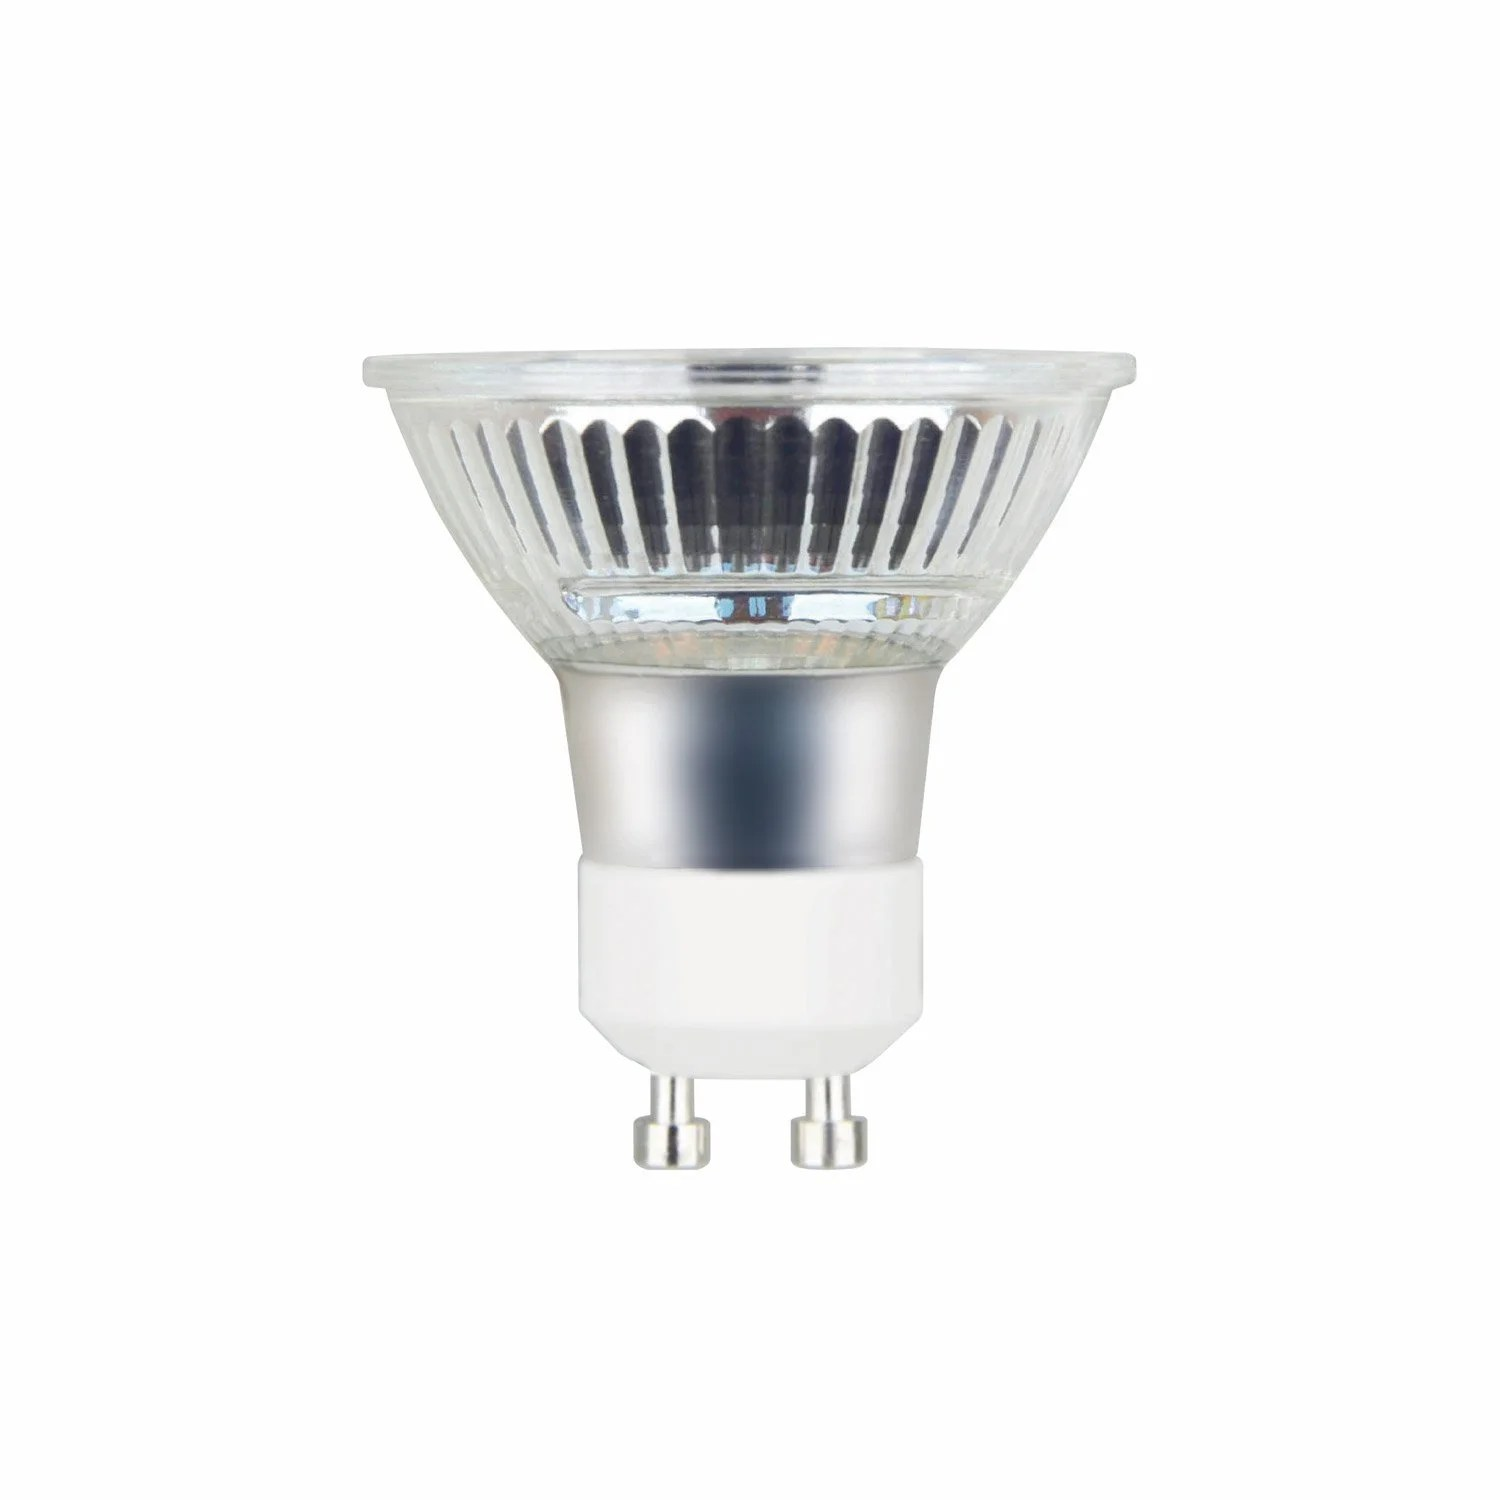 Ampoule Led Dimmable Ampoule Led Gu10 Dimmable Pour Spot 4w 460lm équiv 50w